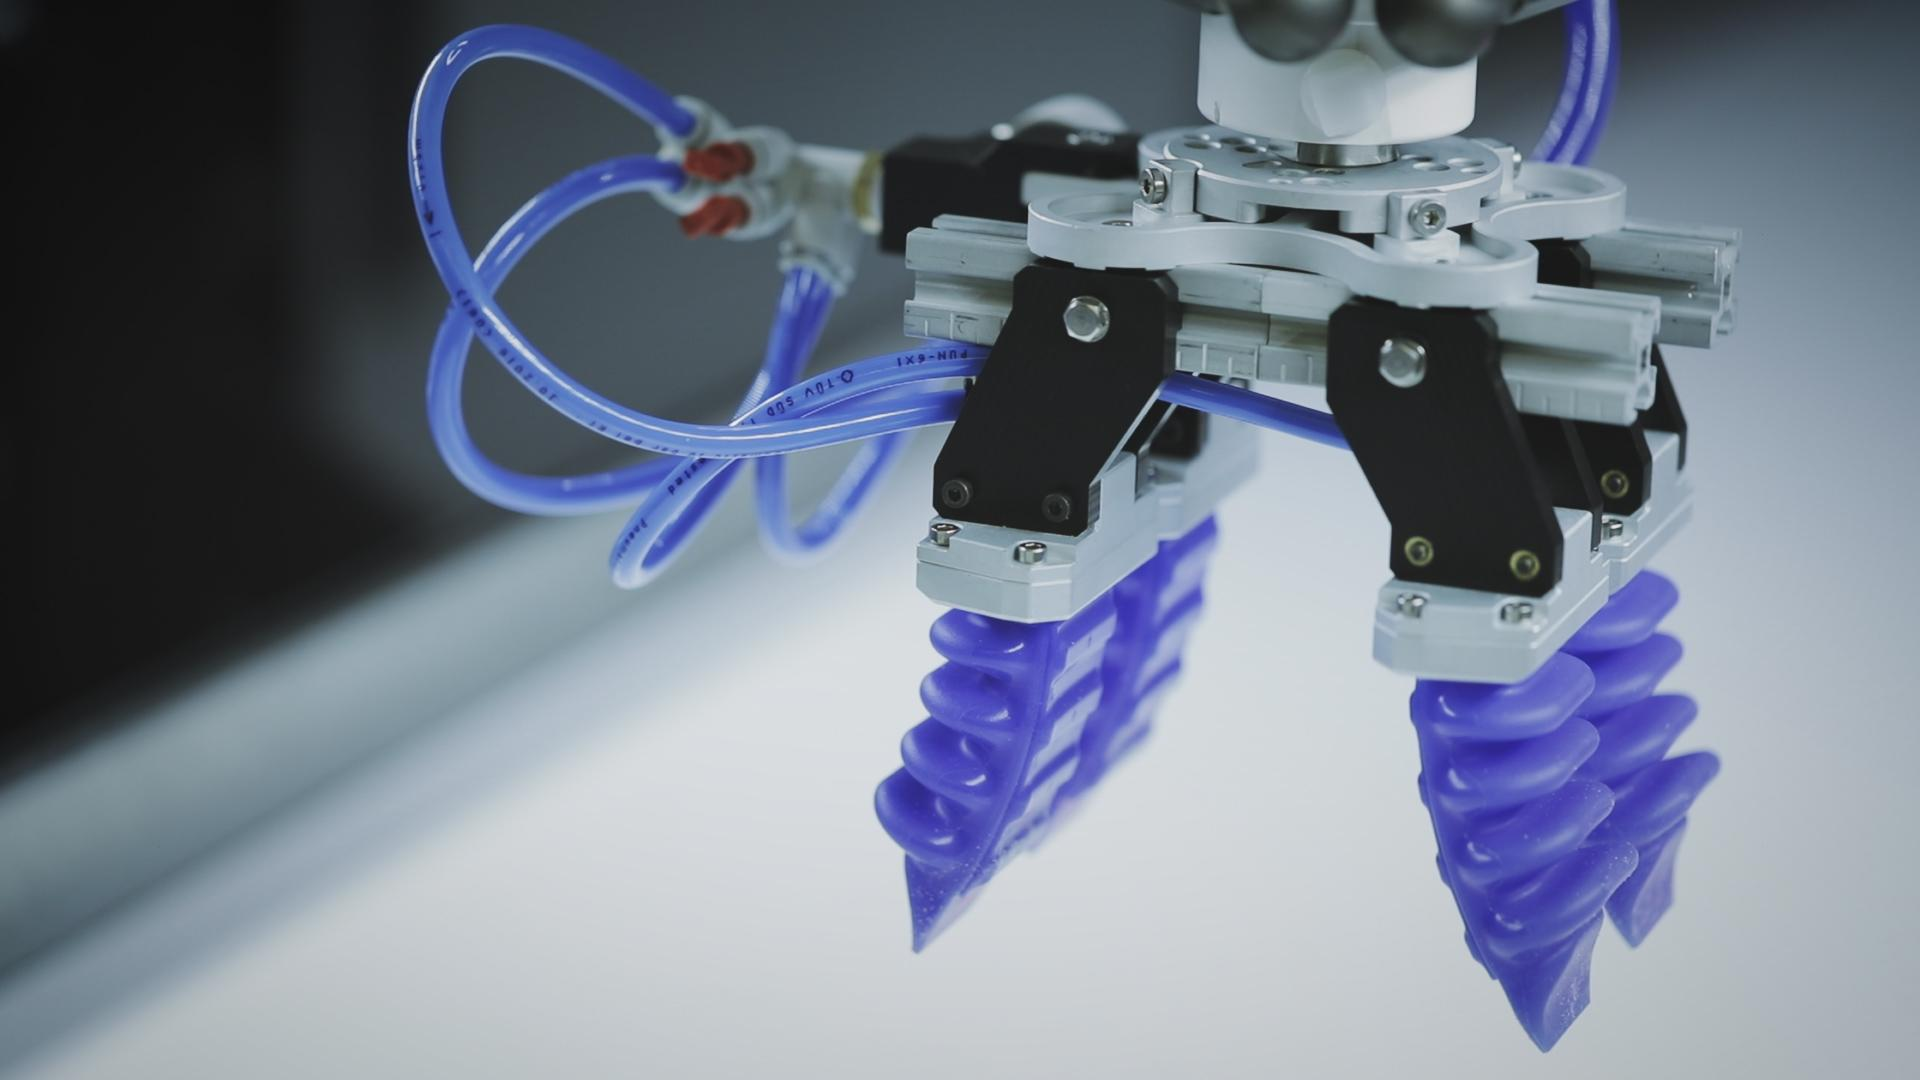 Why Soft Robotics turned octopus-inspired robots into industrial grippers